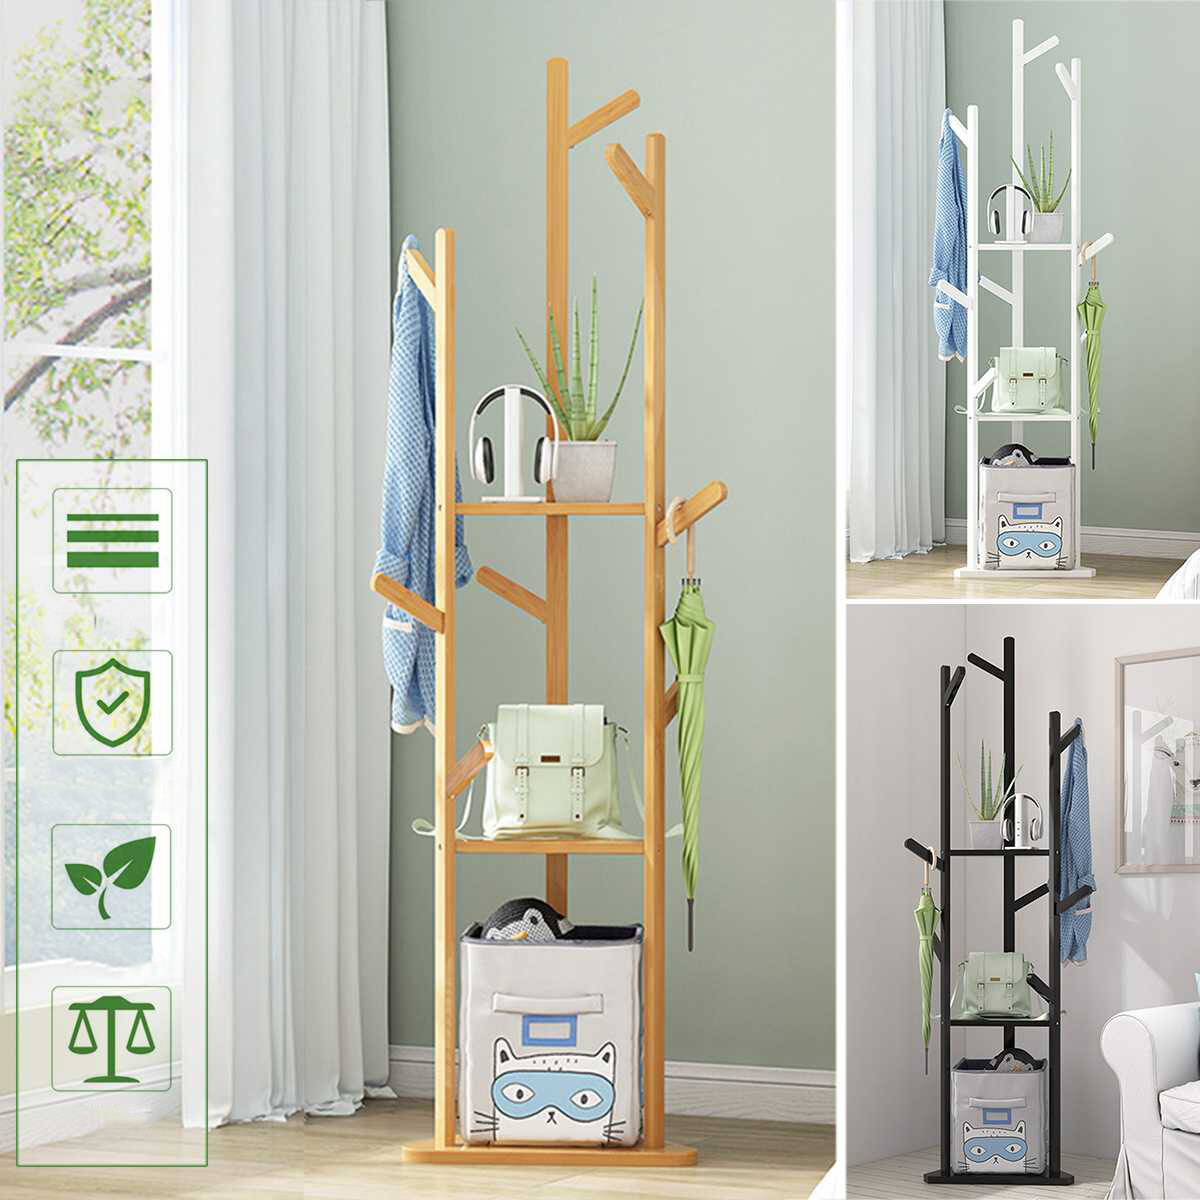 Solid Wood Triangle Clothes Hanger Floor Coat Rack Stand 8 Hooks Home Storage Clothes Hanging Wooden Hanger Bedroom Dryi